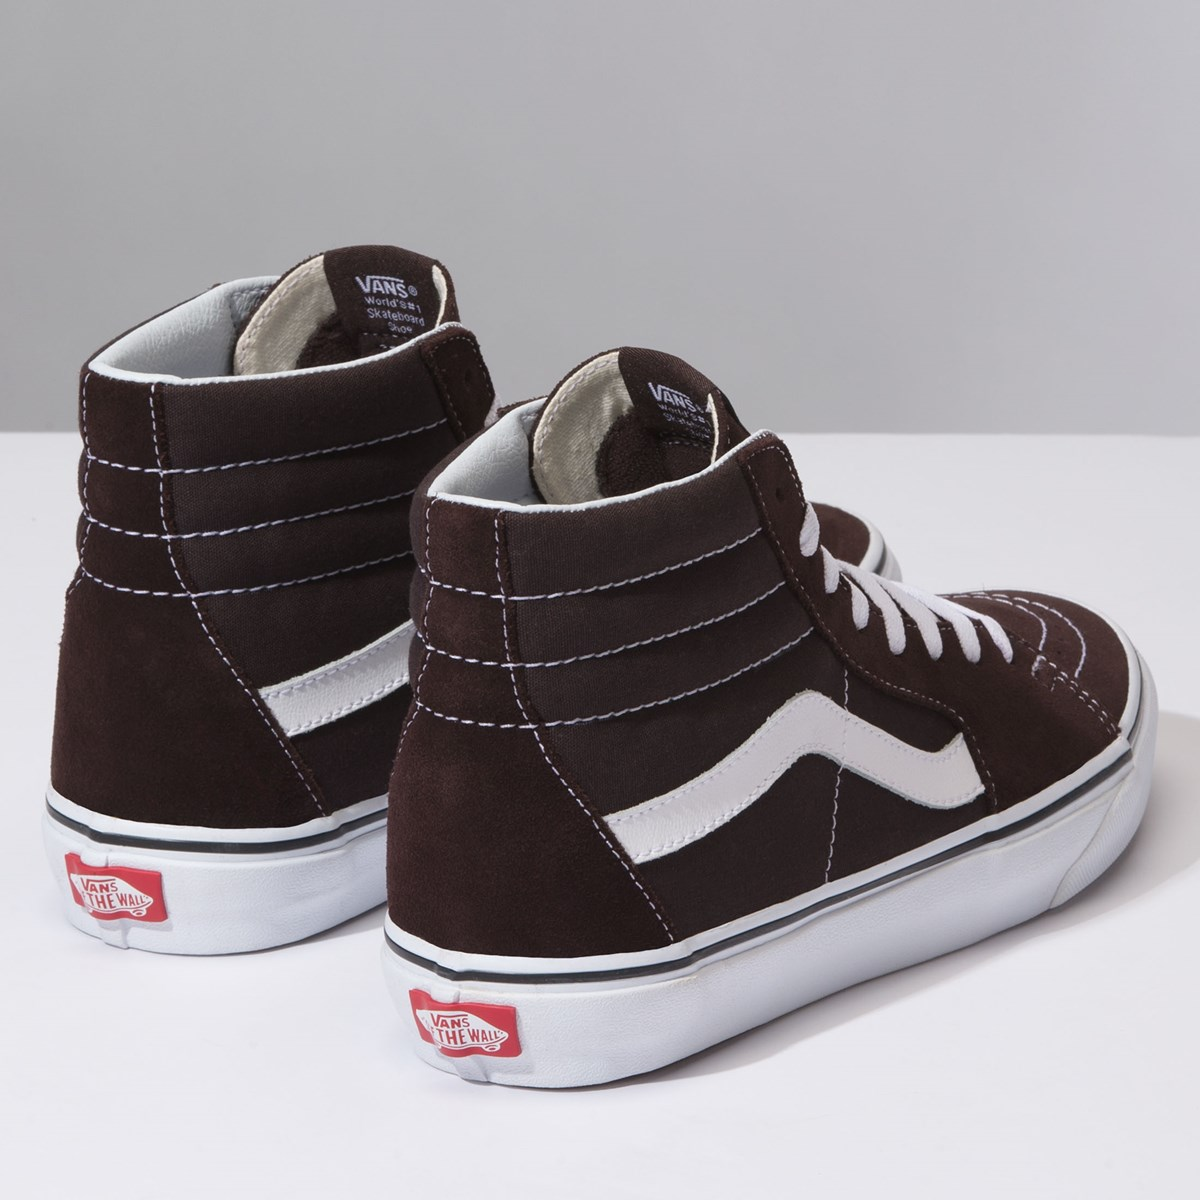 Men's Sk8-Hi Sneaker in Brown